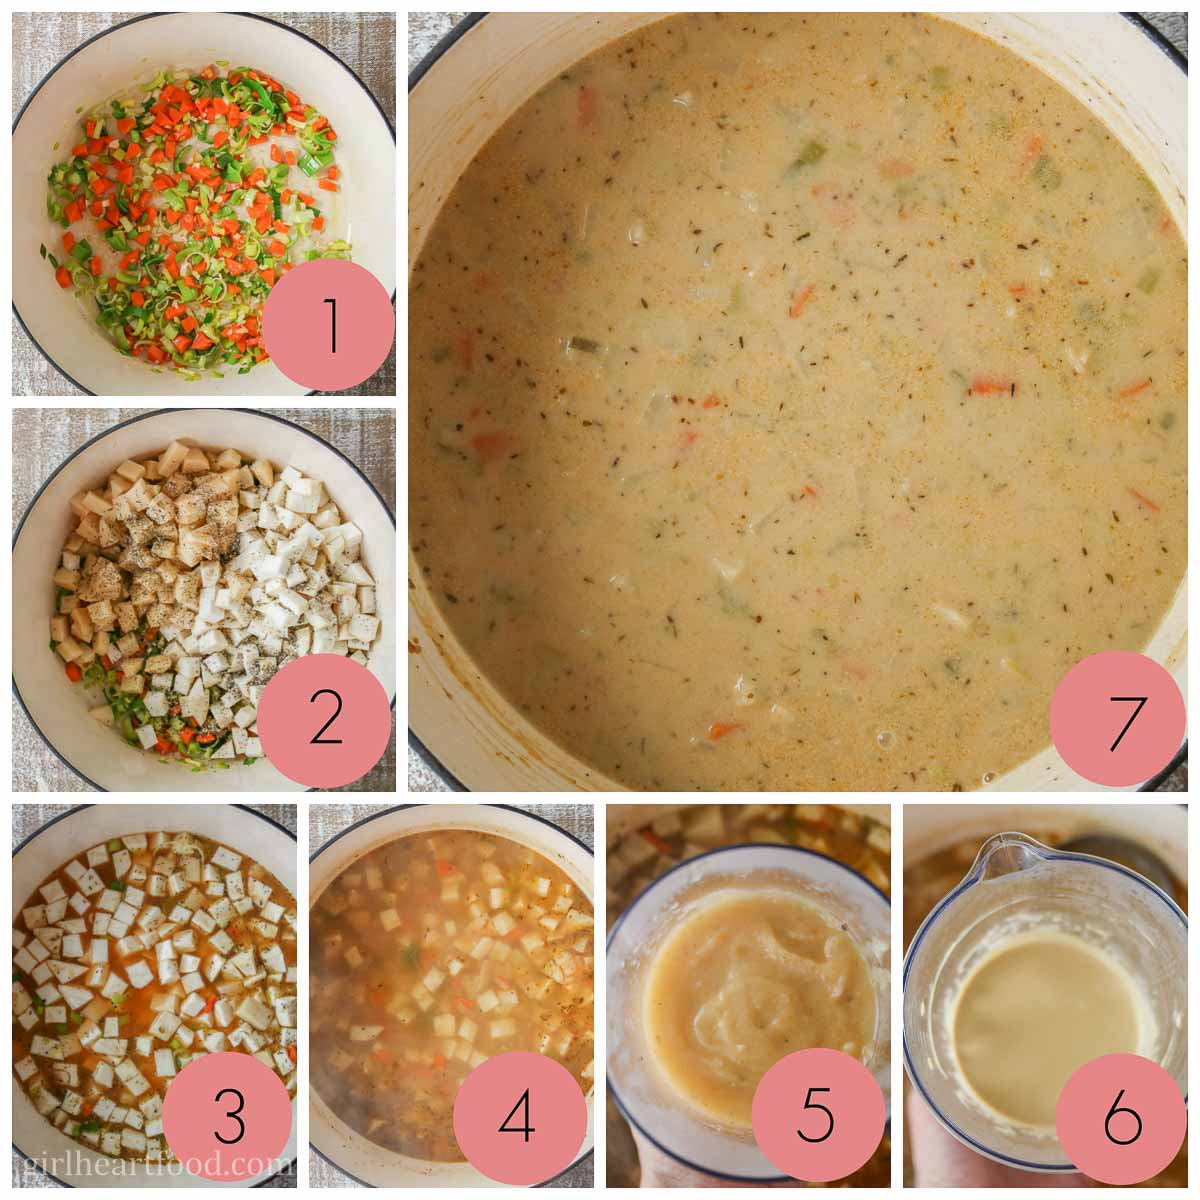 Collage of steps to make celery root soup.